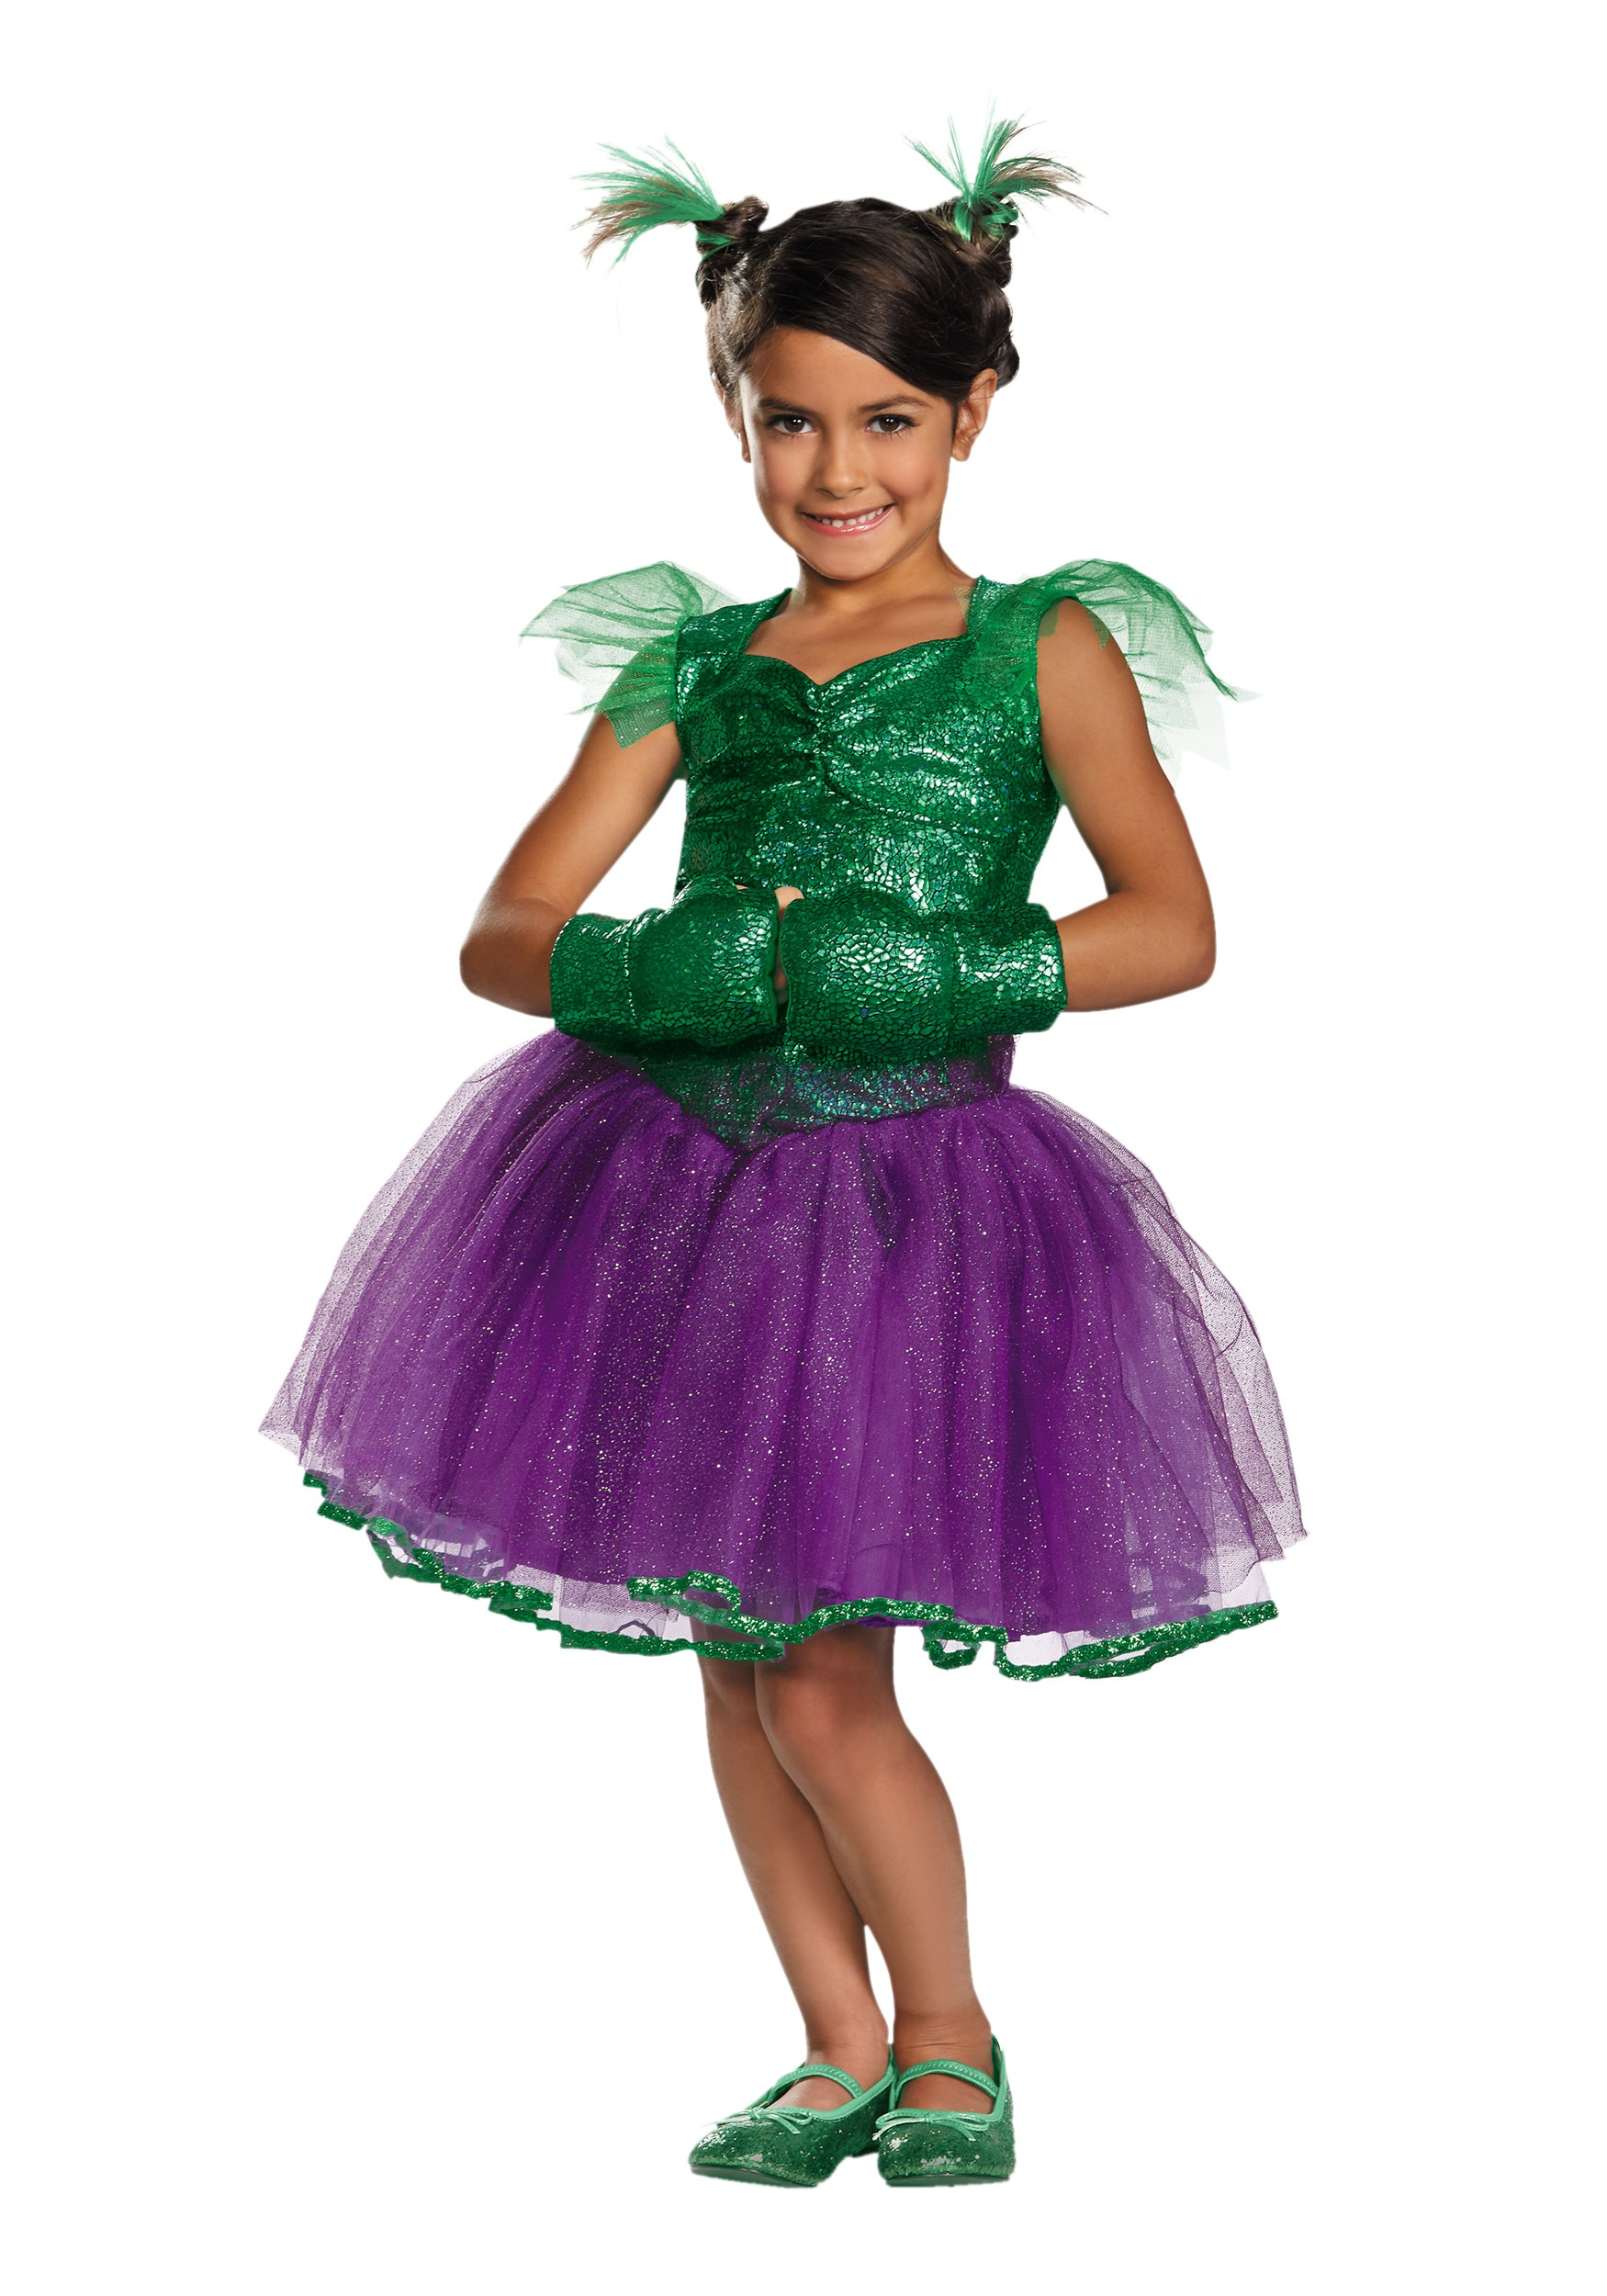 She Hulk Tutu Prestige Costume  sc 1 st  Halloween Costumes & Incredible Hulk Costumes - Halloween Costume Ideas 2018